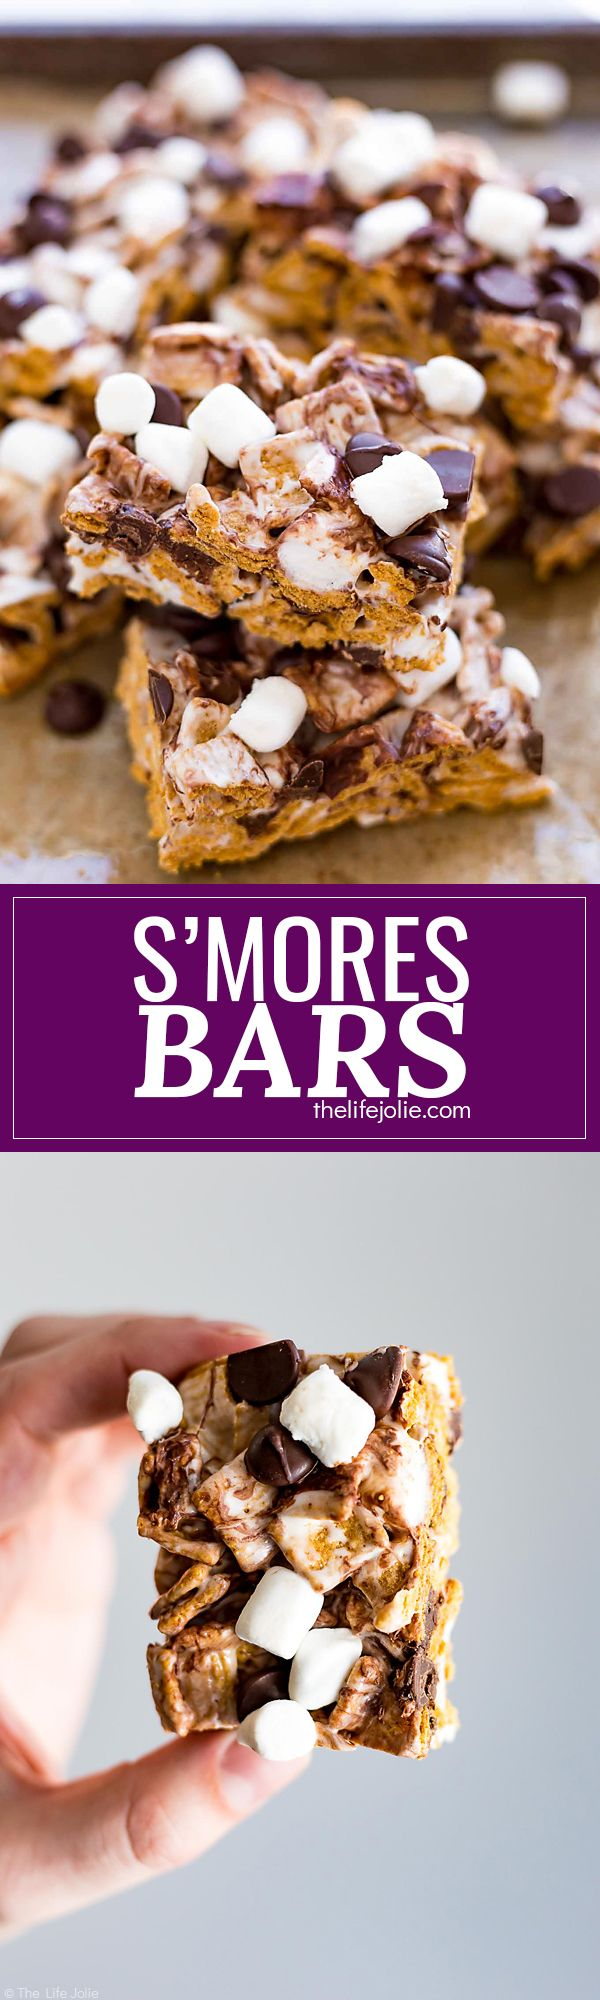 These S'mores Bars are one of the best easy recipes to throw together for a last minute party or get together. Made with Golden Grahams, marshmallows and chocolate chips, these are a great no bake dessert option that both kids and adults will love this summer!